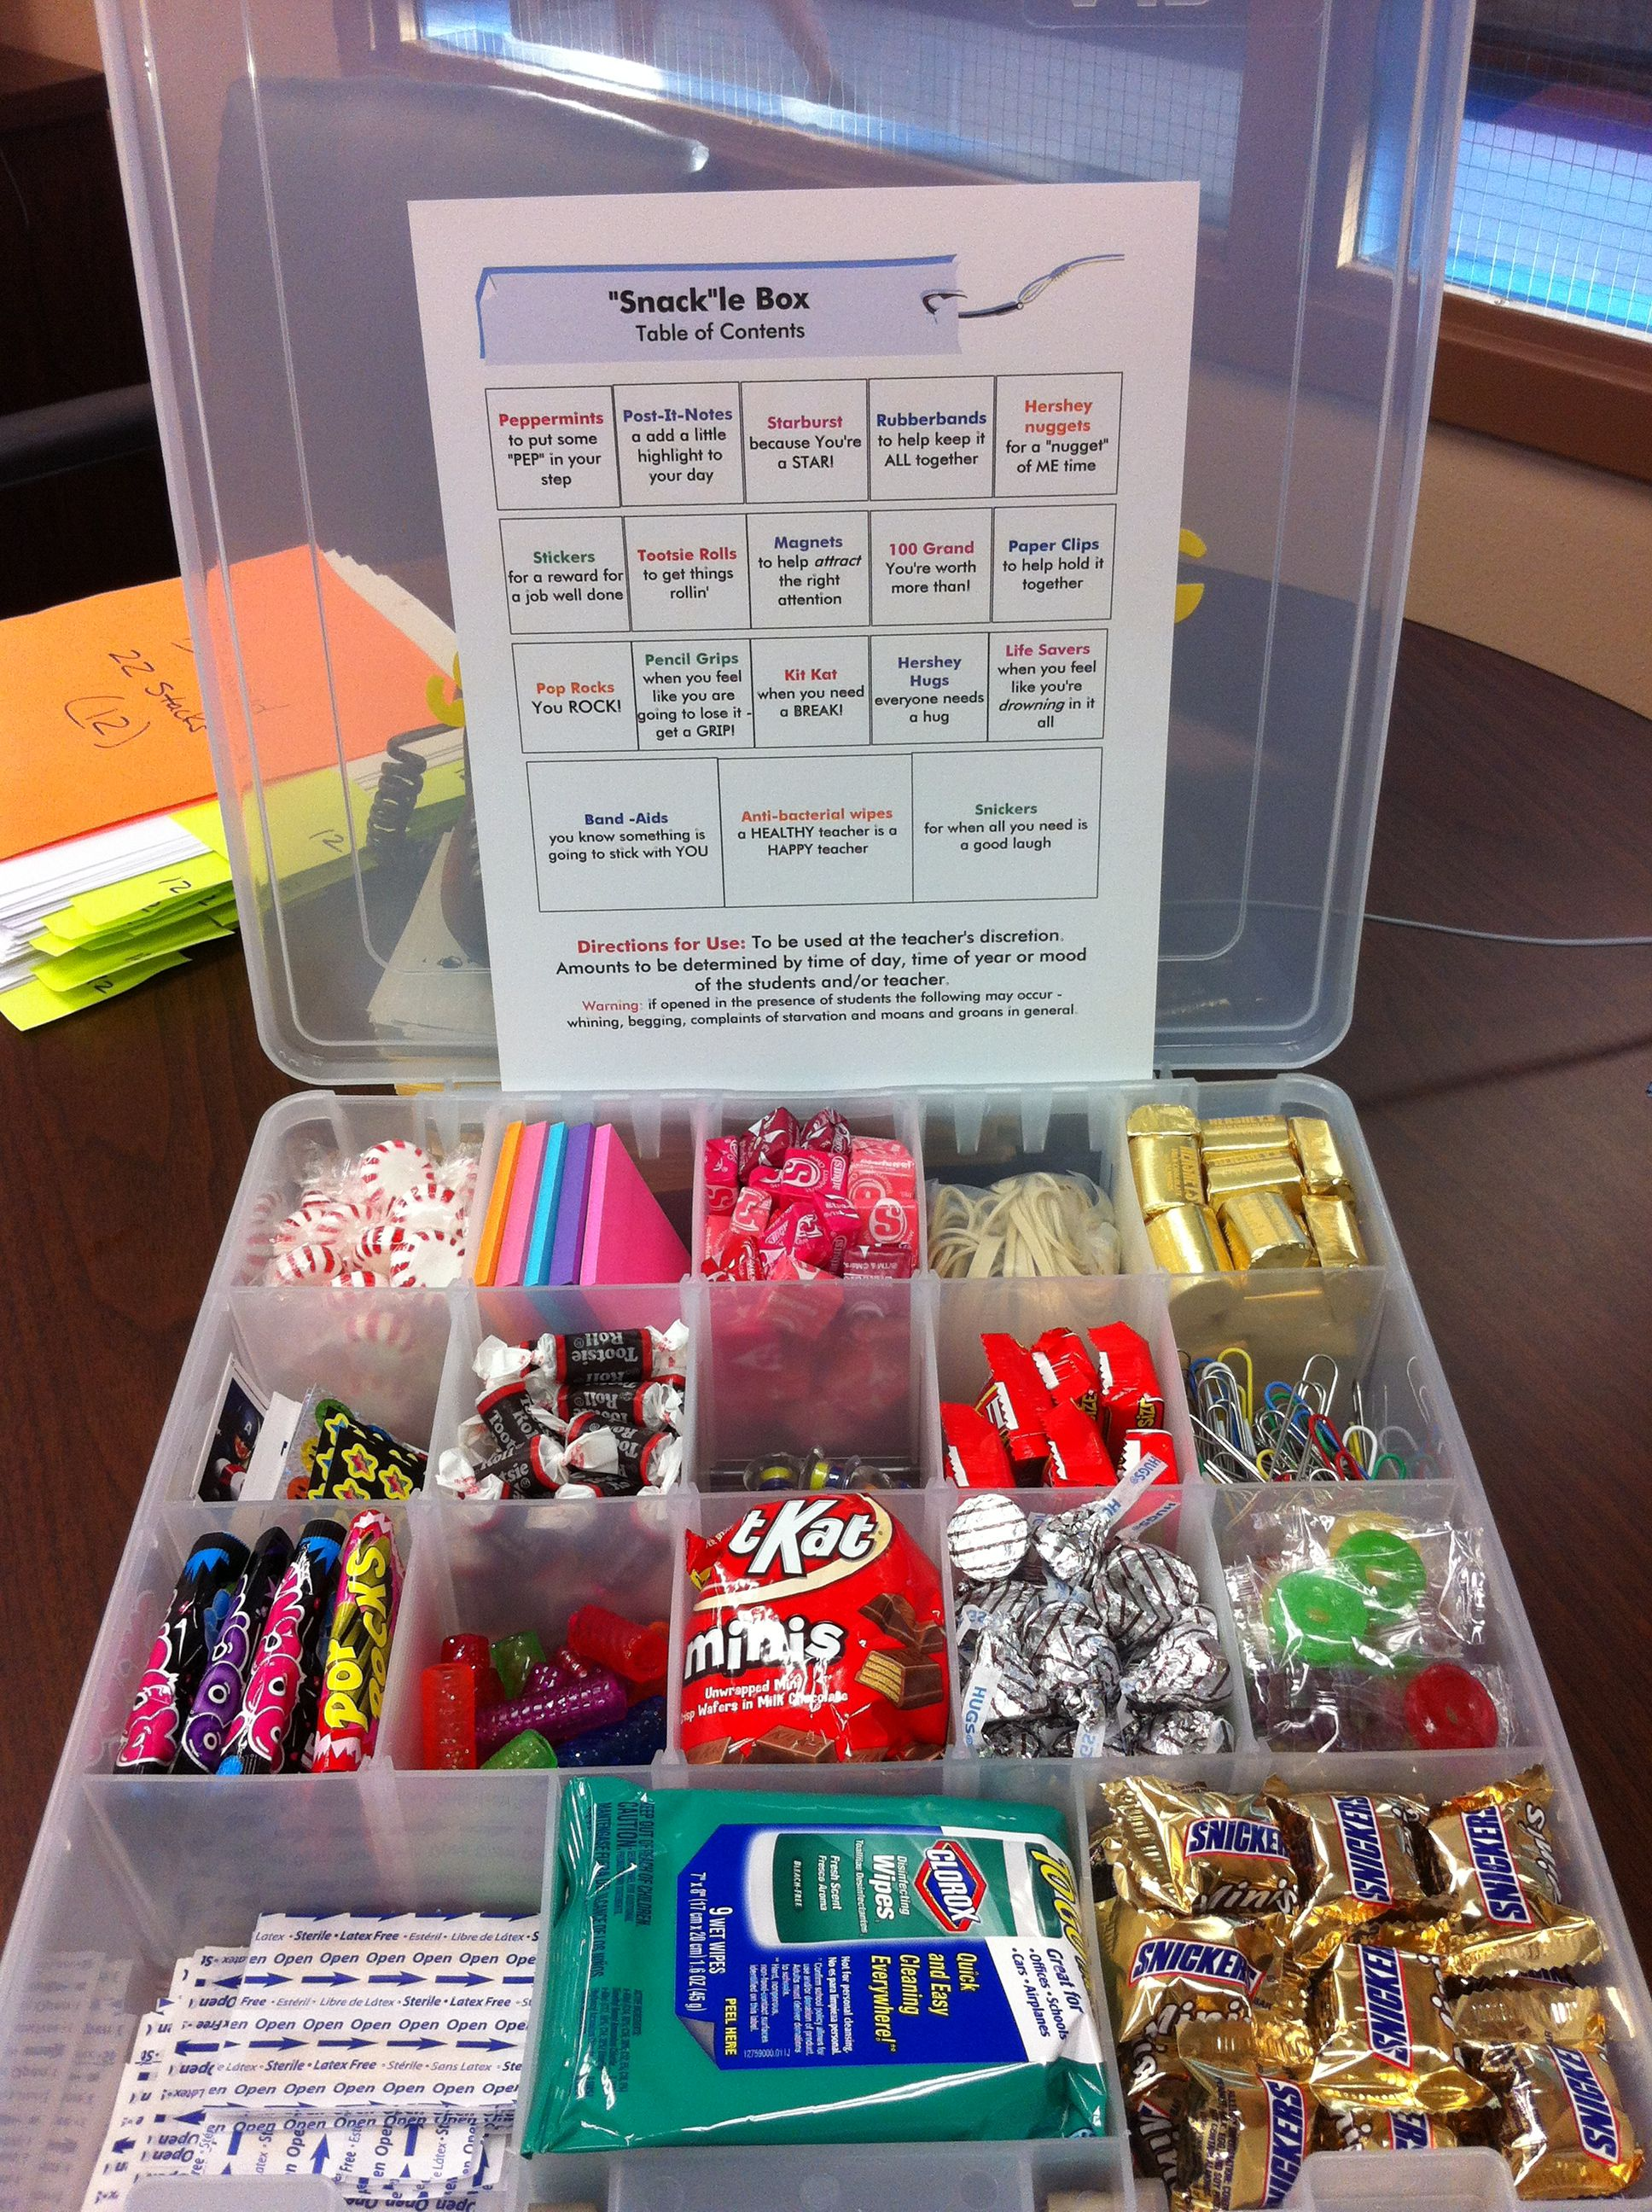 Snack Le Box Snacks And Supplies For Your Teacher Like A Tackle